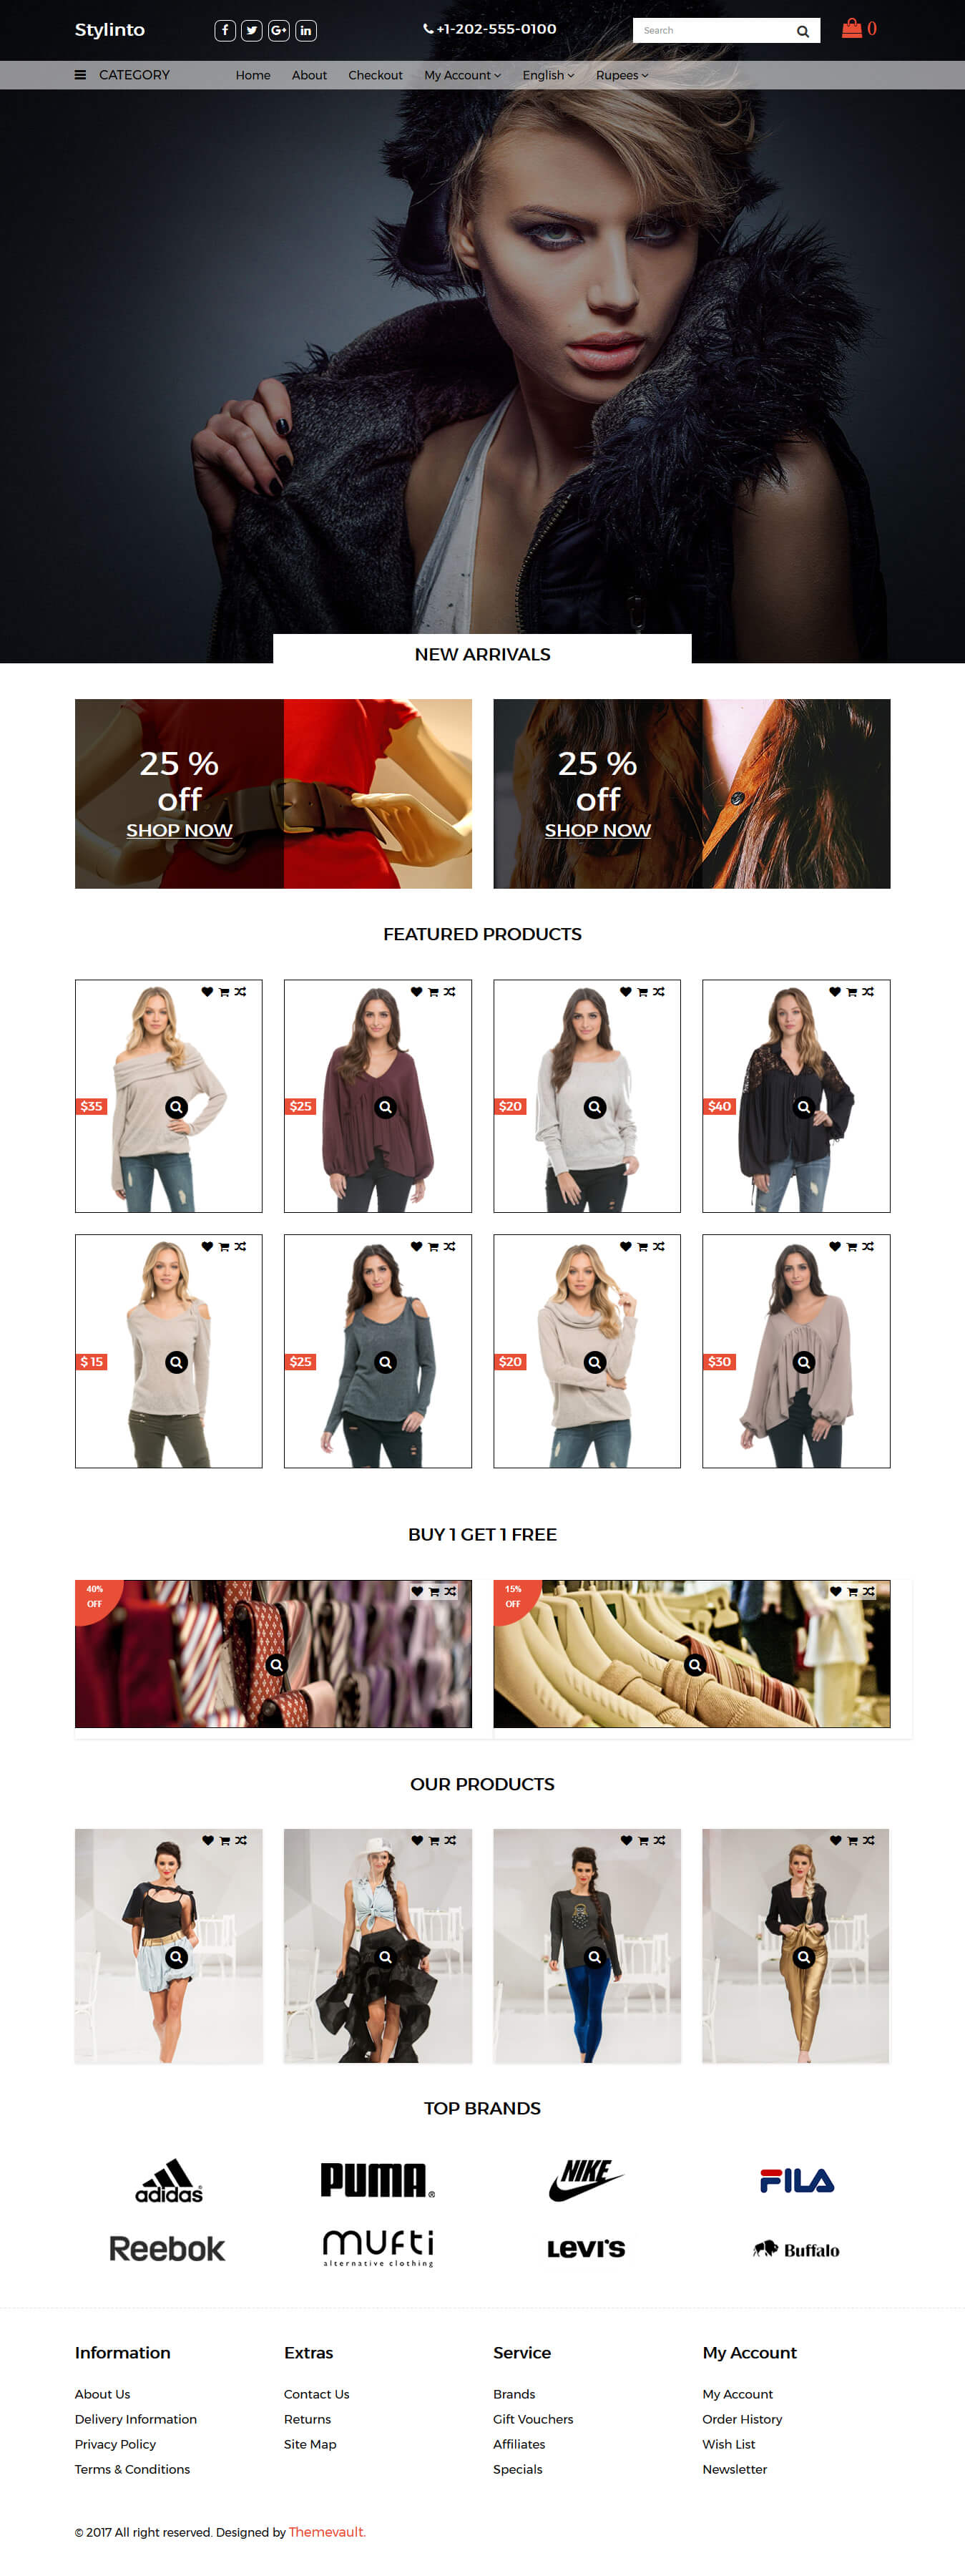 Stylinto – Free Fashion Store Ecommerce Website Template